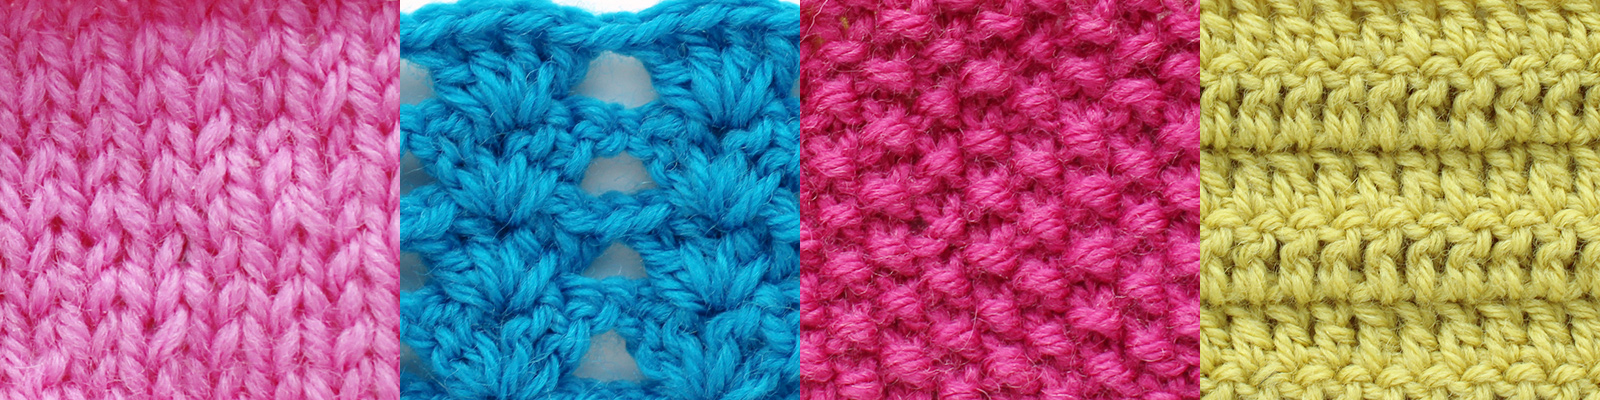 Samples of knitting and crochet - download free guide for calculating the number of stitches